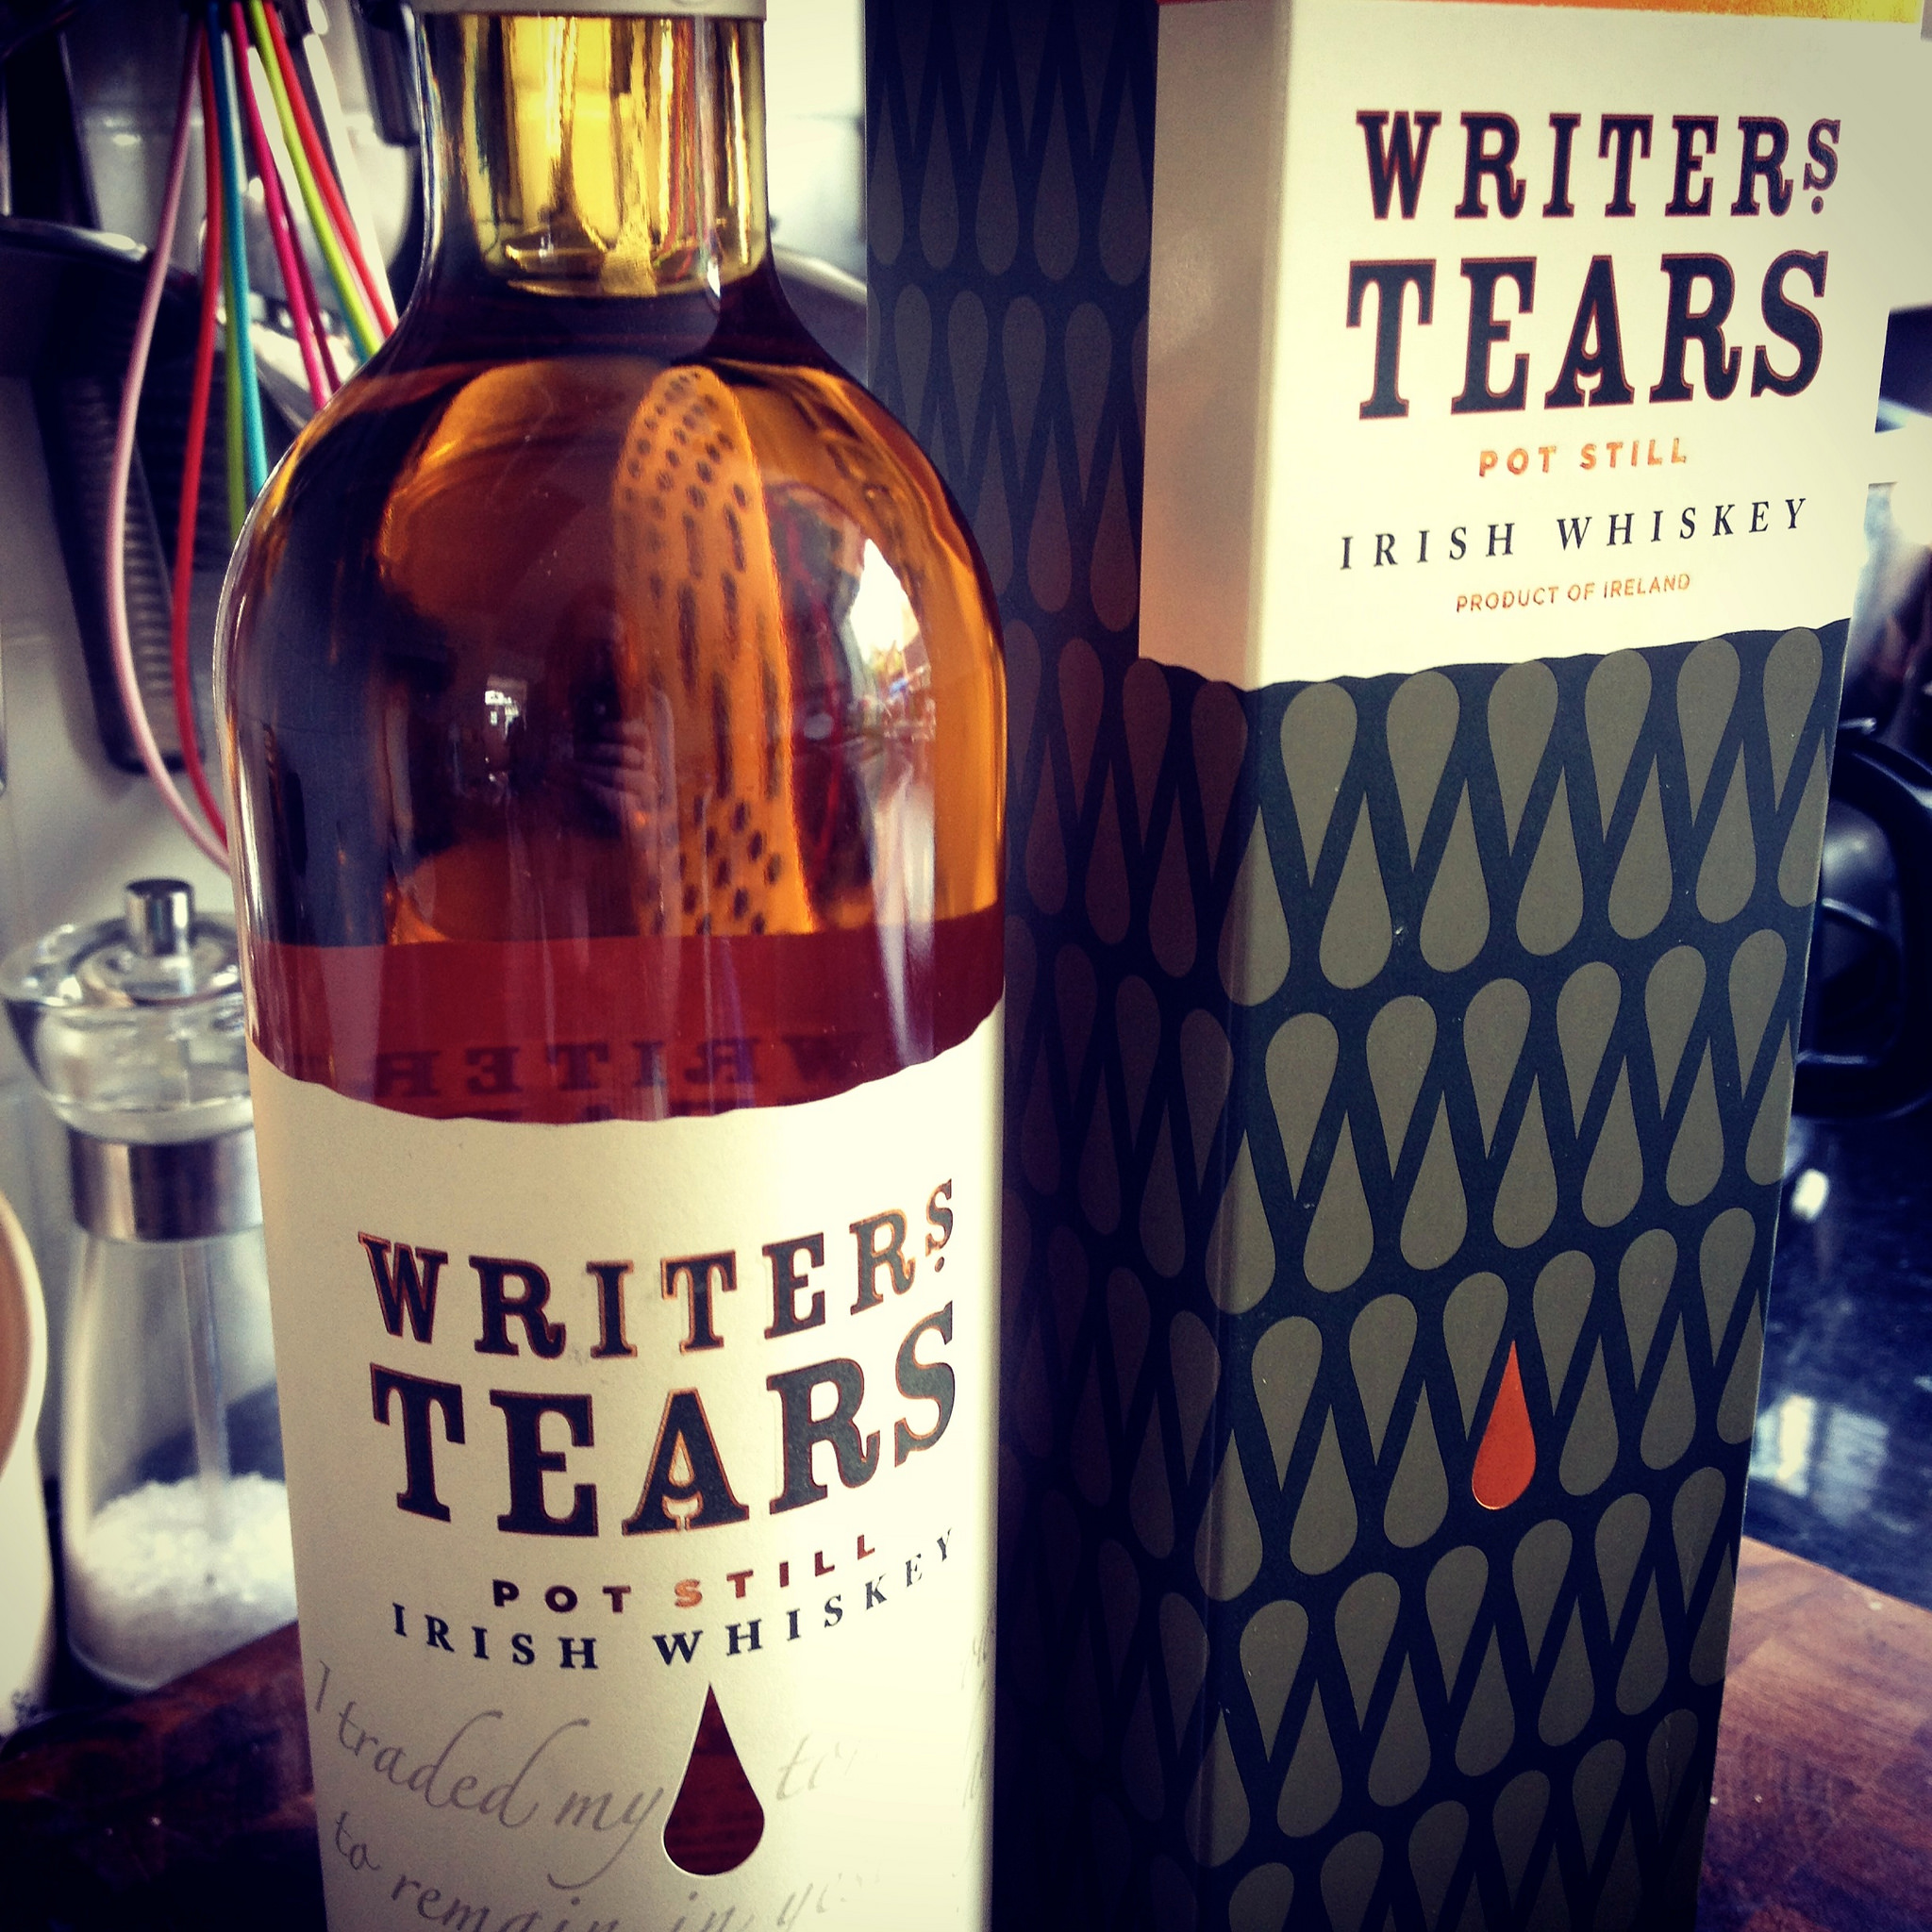 The writer's tears : Whisky irlandais